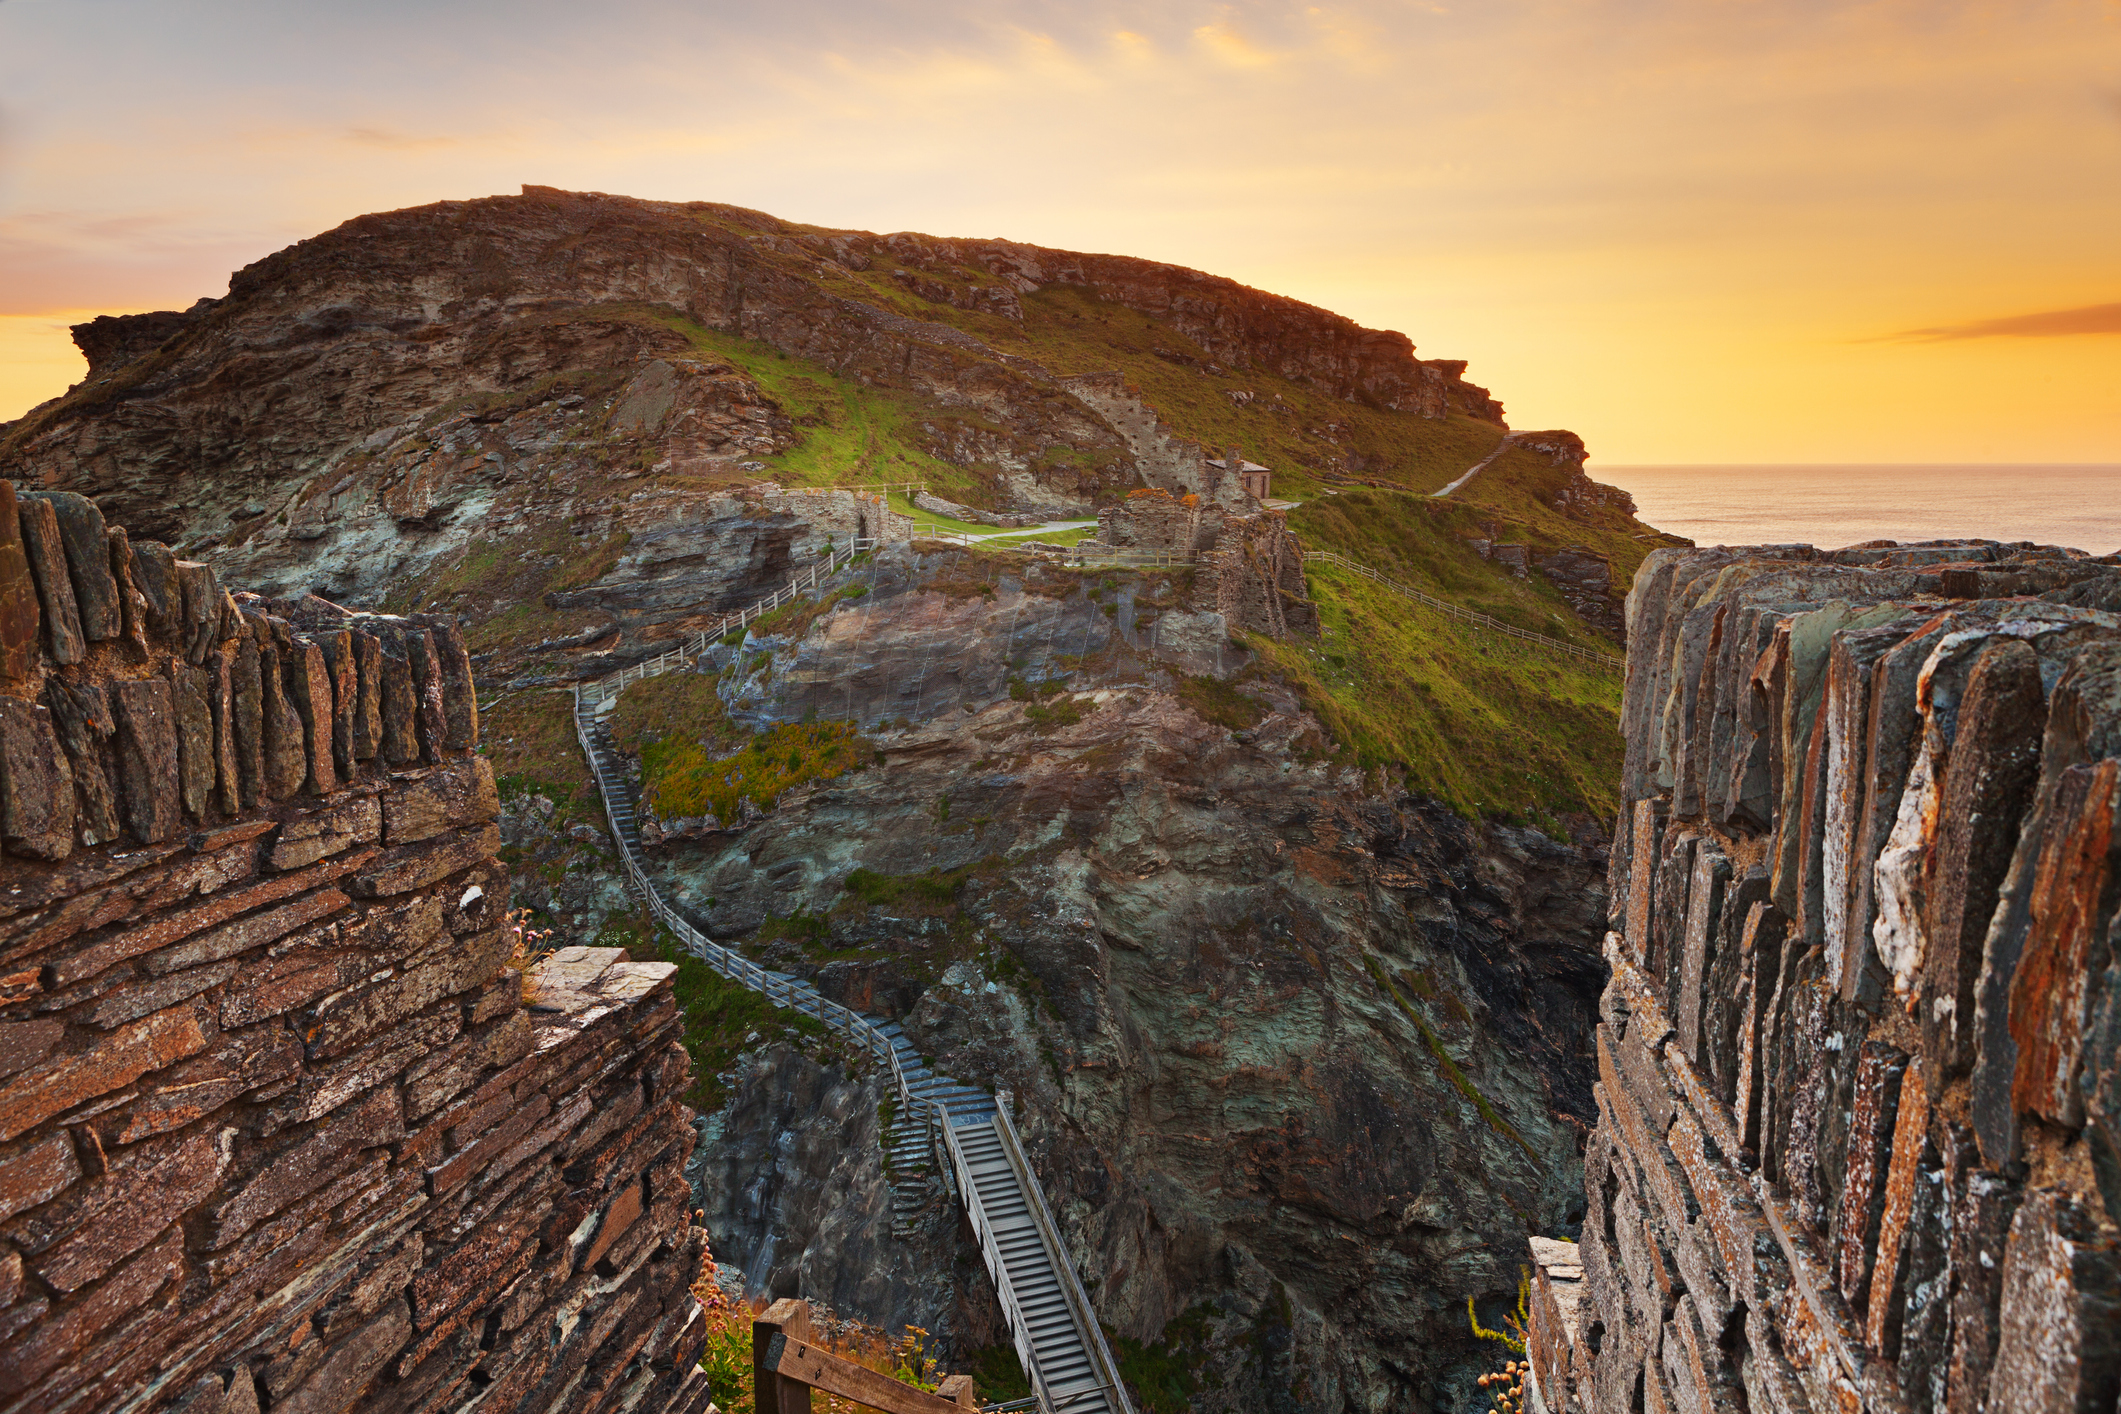 Rugged Tintagel with castle remains, Cornwall, landscape at sunset